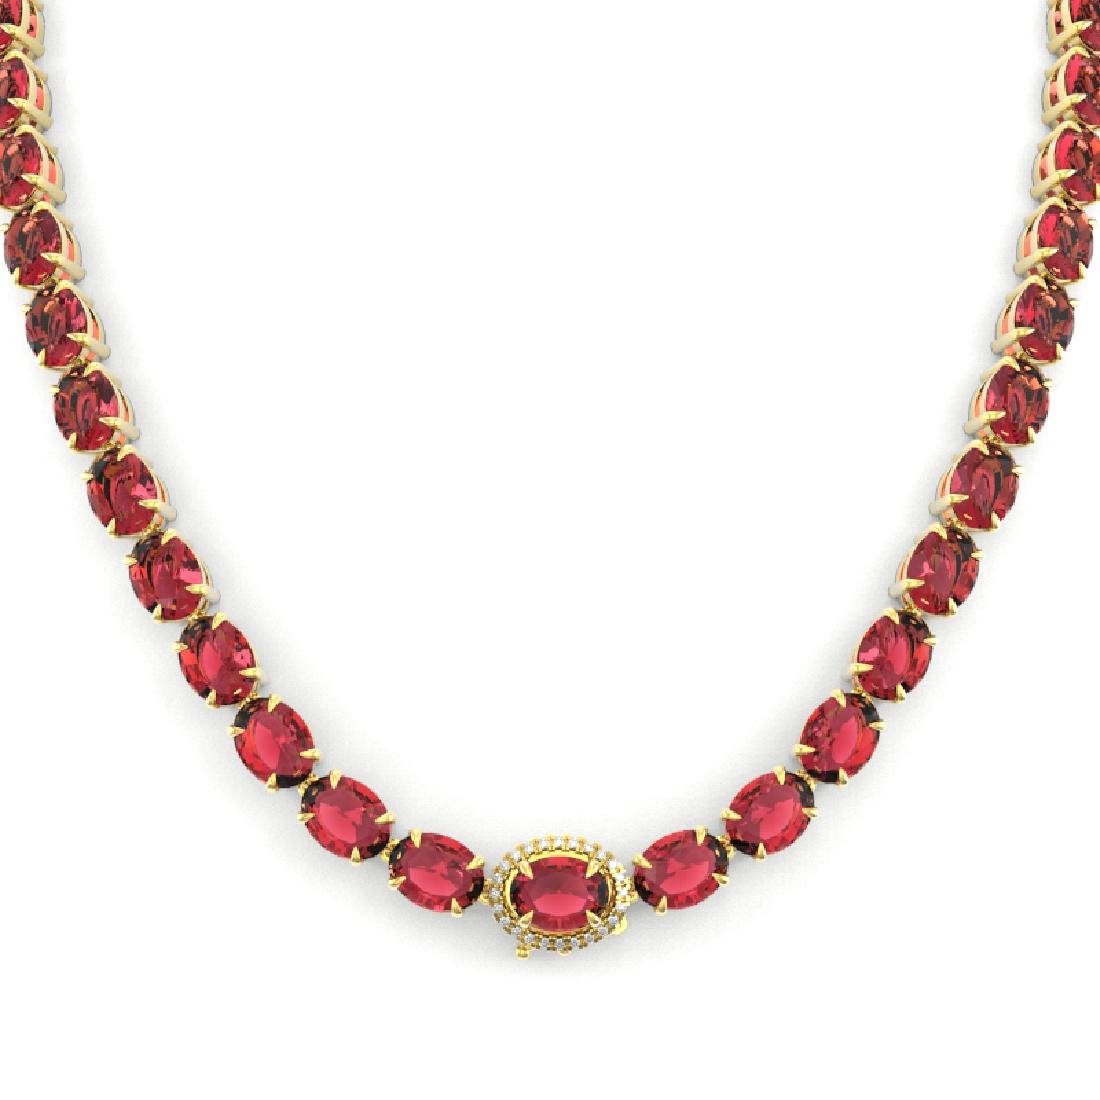 35.25 CTW Pink Tourmaline & VS/SI Diamond Micro Halo - 2